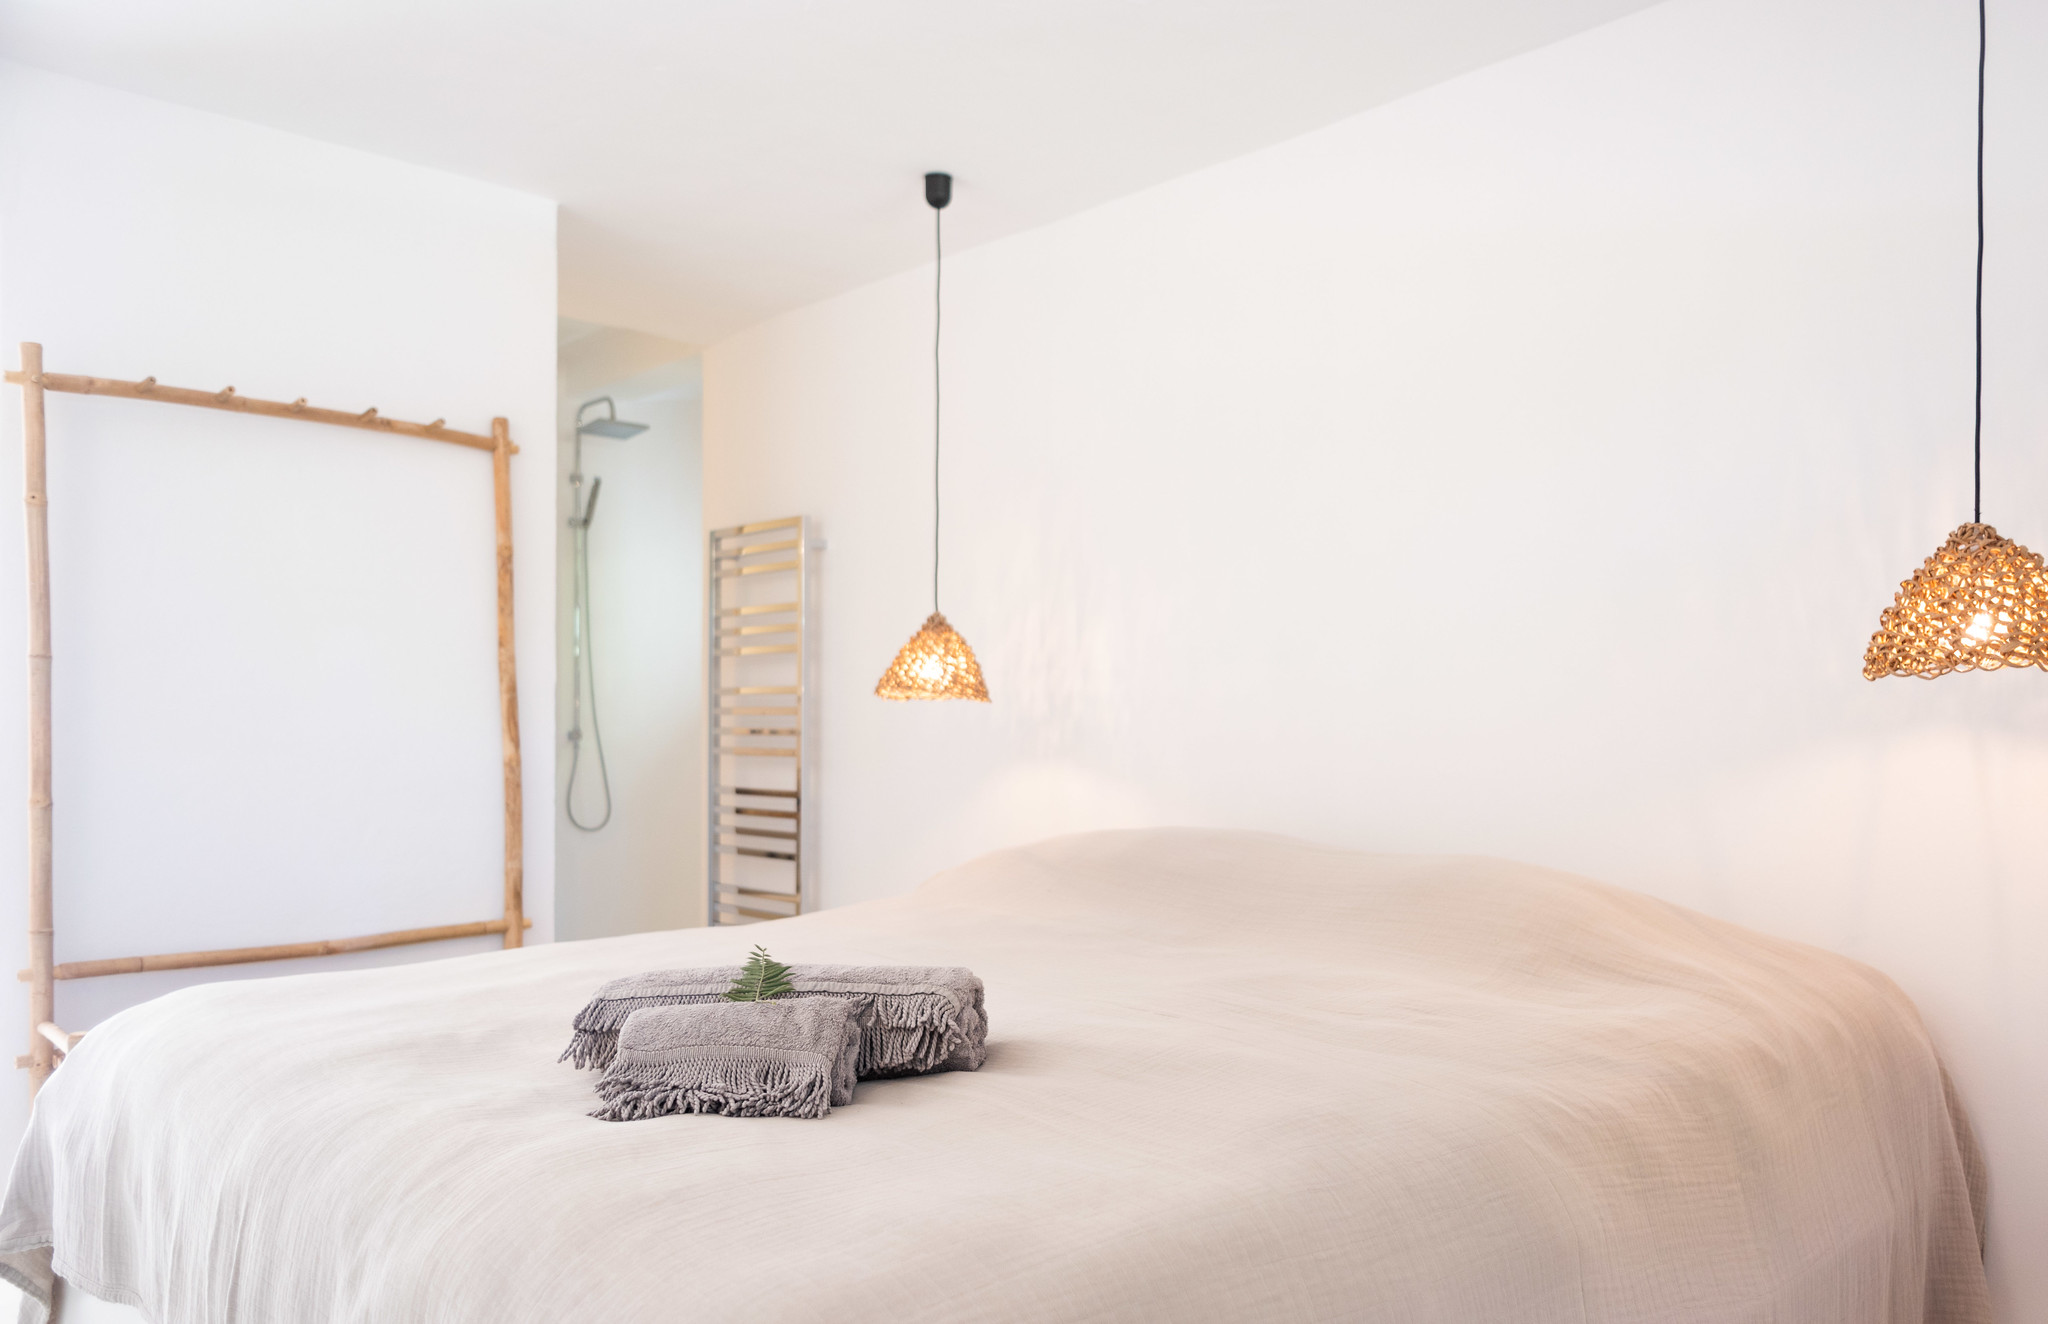 https://www.white-ibiza.com/wp-content/uploads/2020/05/white-ibiza-villas-can-cactus-bedroom.jpg